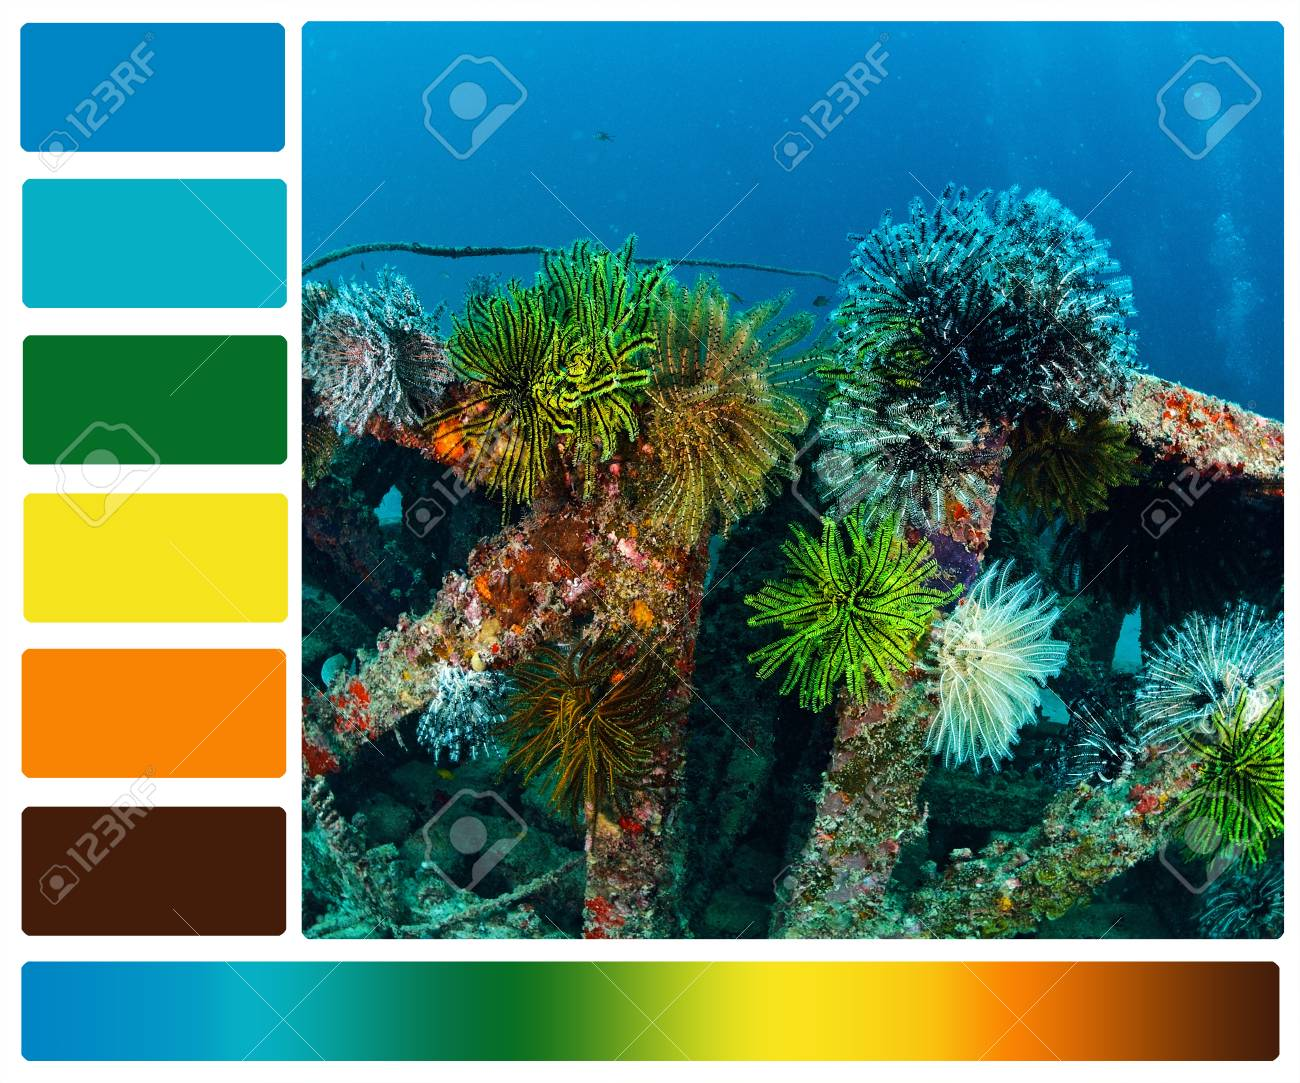 Marine Life Underwater With Color Palette Swatches Stock Photo